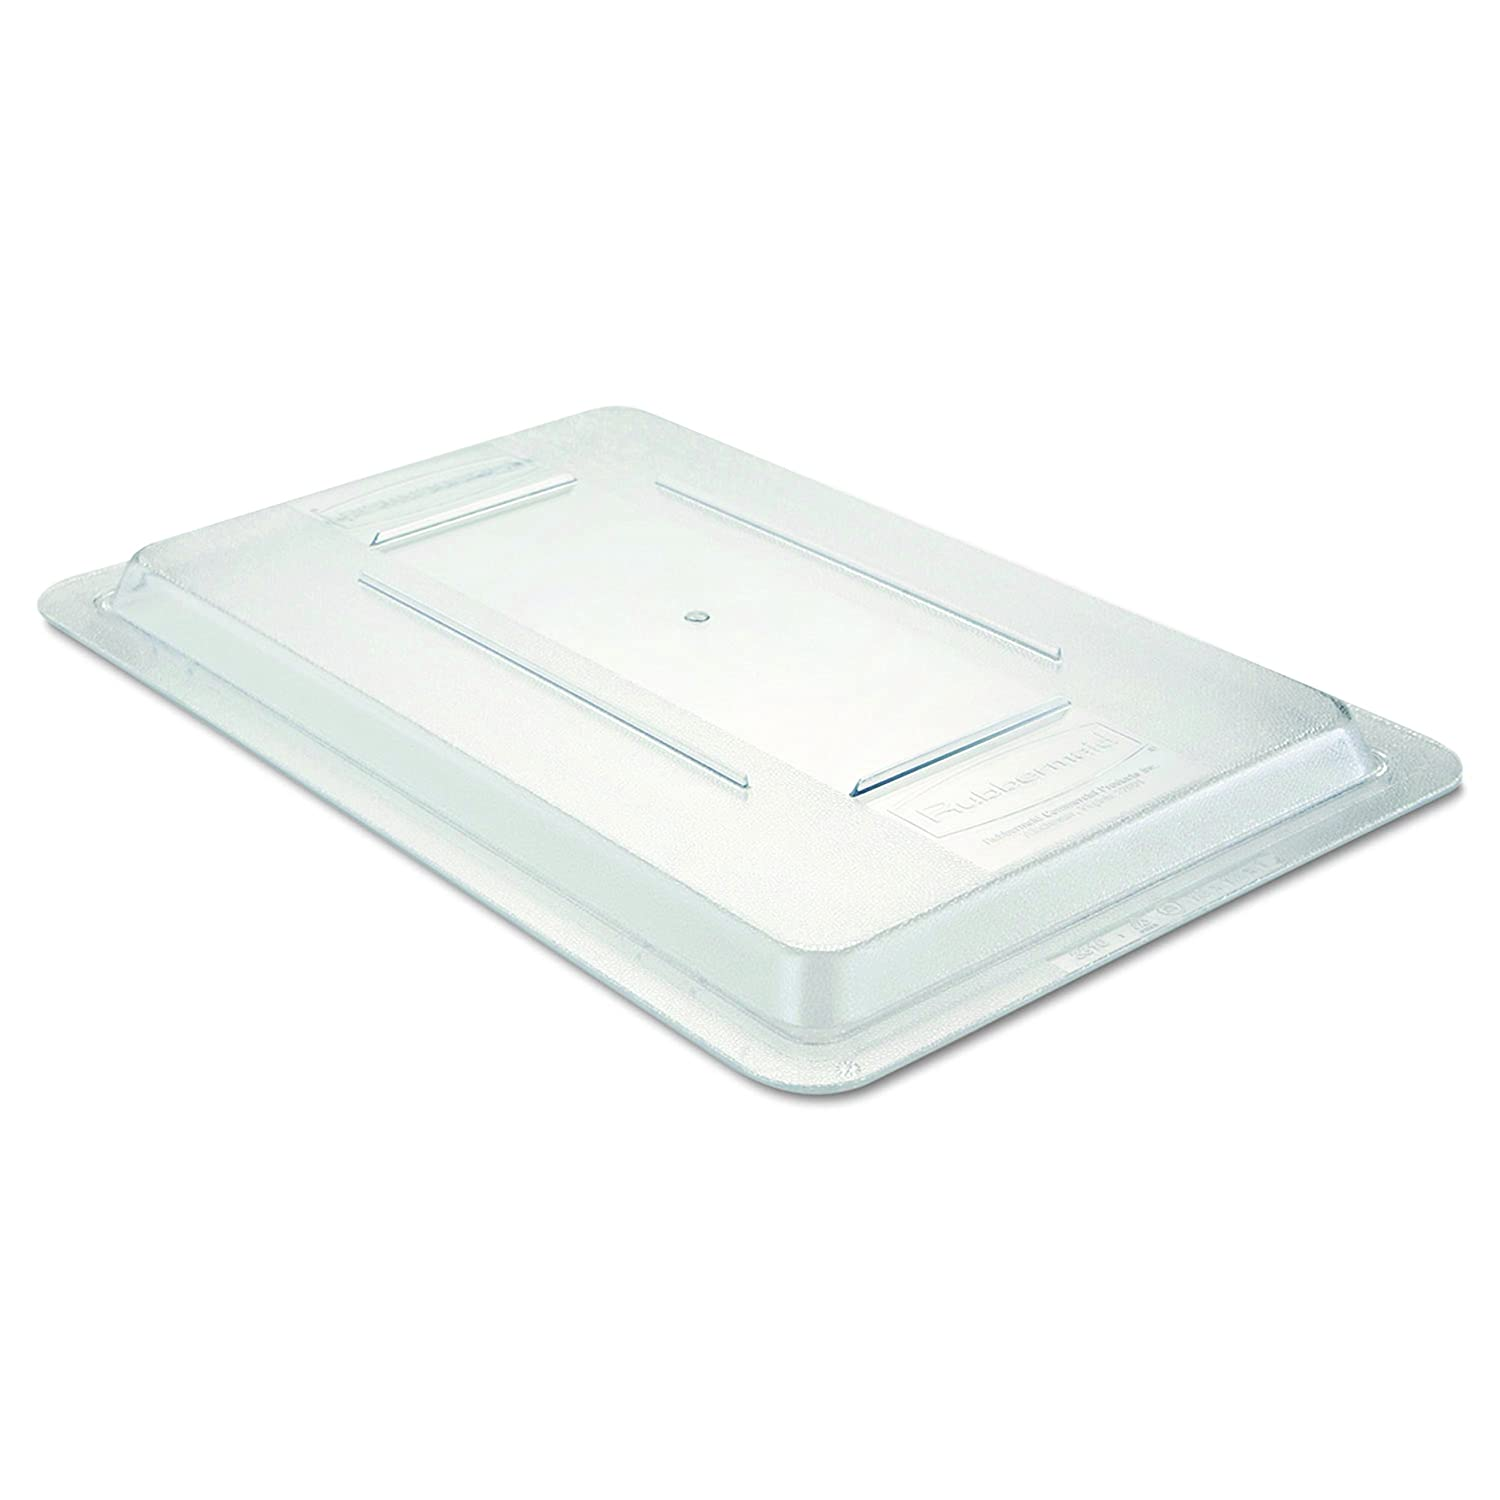 Rubbermaid Max 58% OFF Commercial Products Food Storage Lid 3.5 sold out for 2 Box